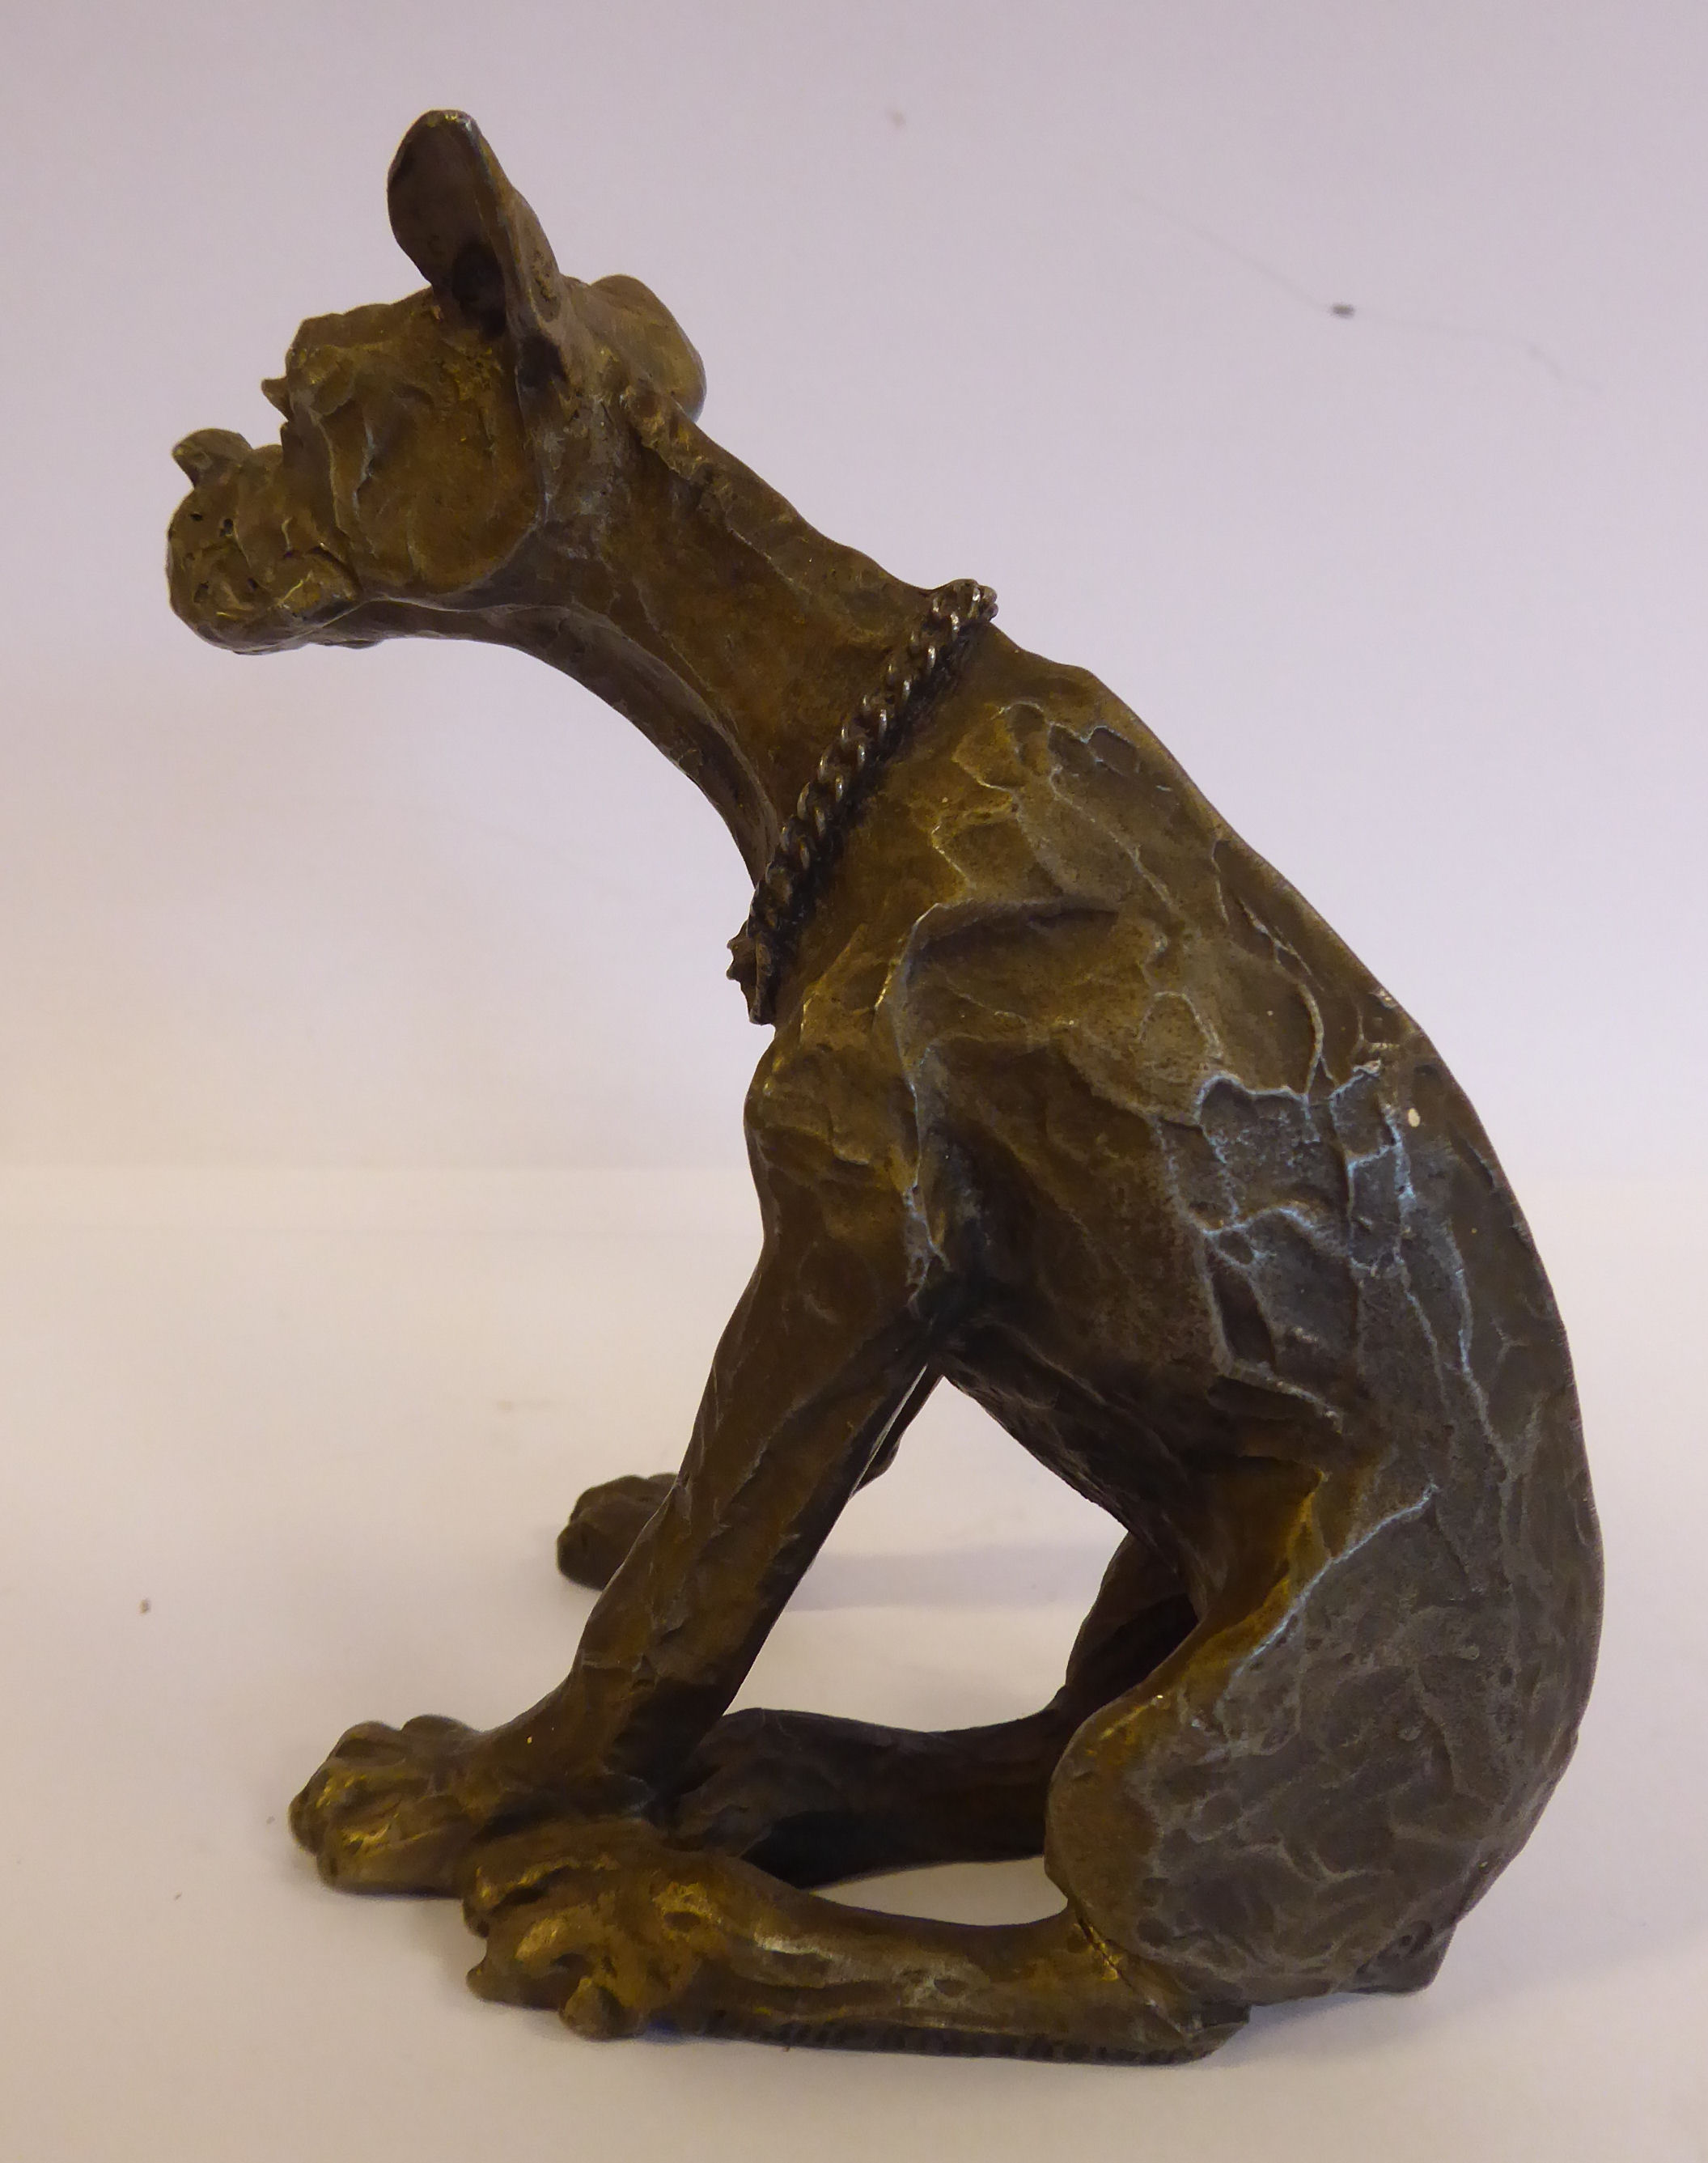 Lot 60 - Philip Kraczkowski - a Hudson pewter model of a seated, whimsical Great Dane 4.